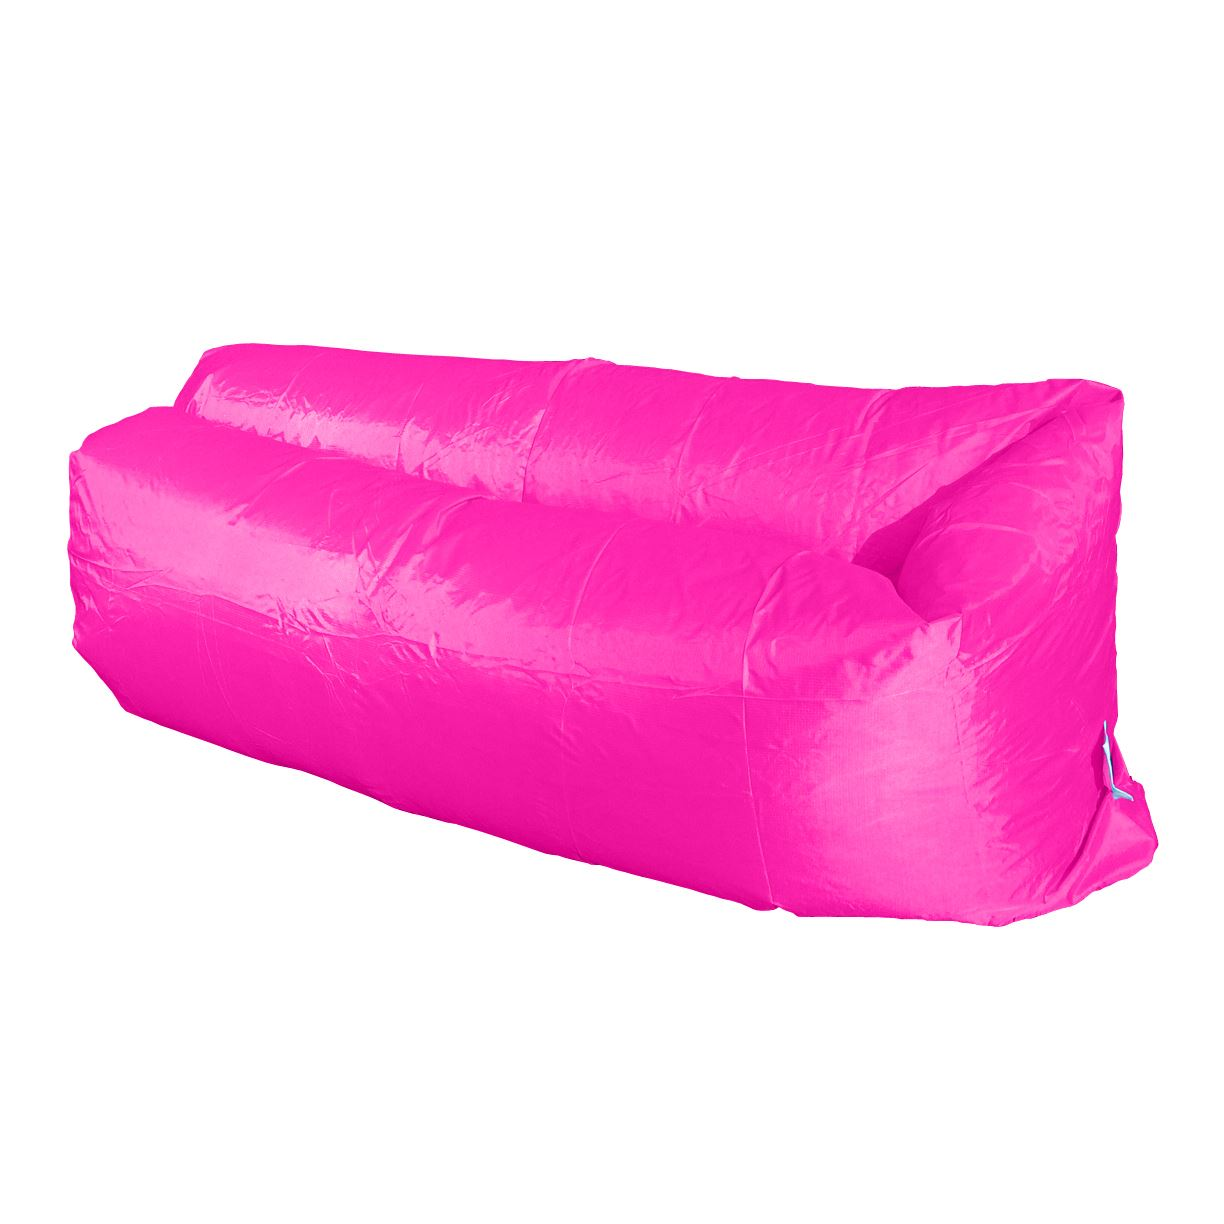 inflatable camping chair collapsible beach sofa air bed luxury seat festival